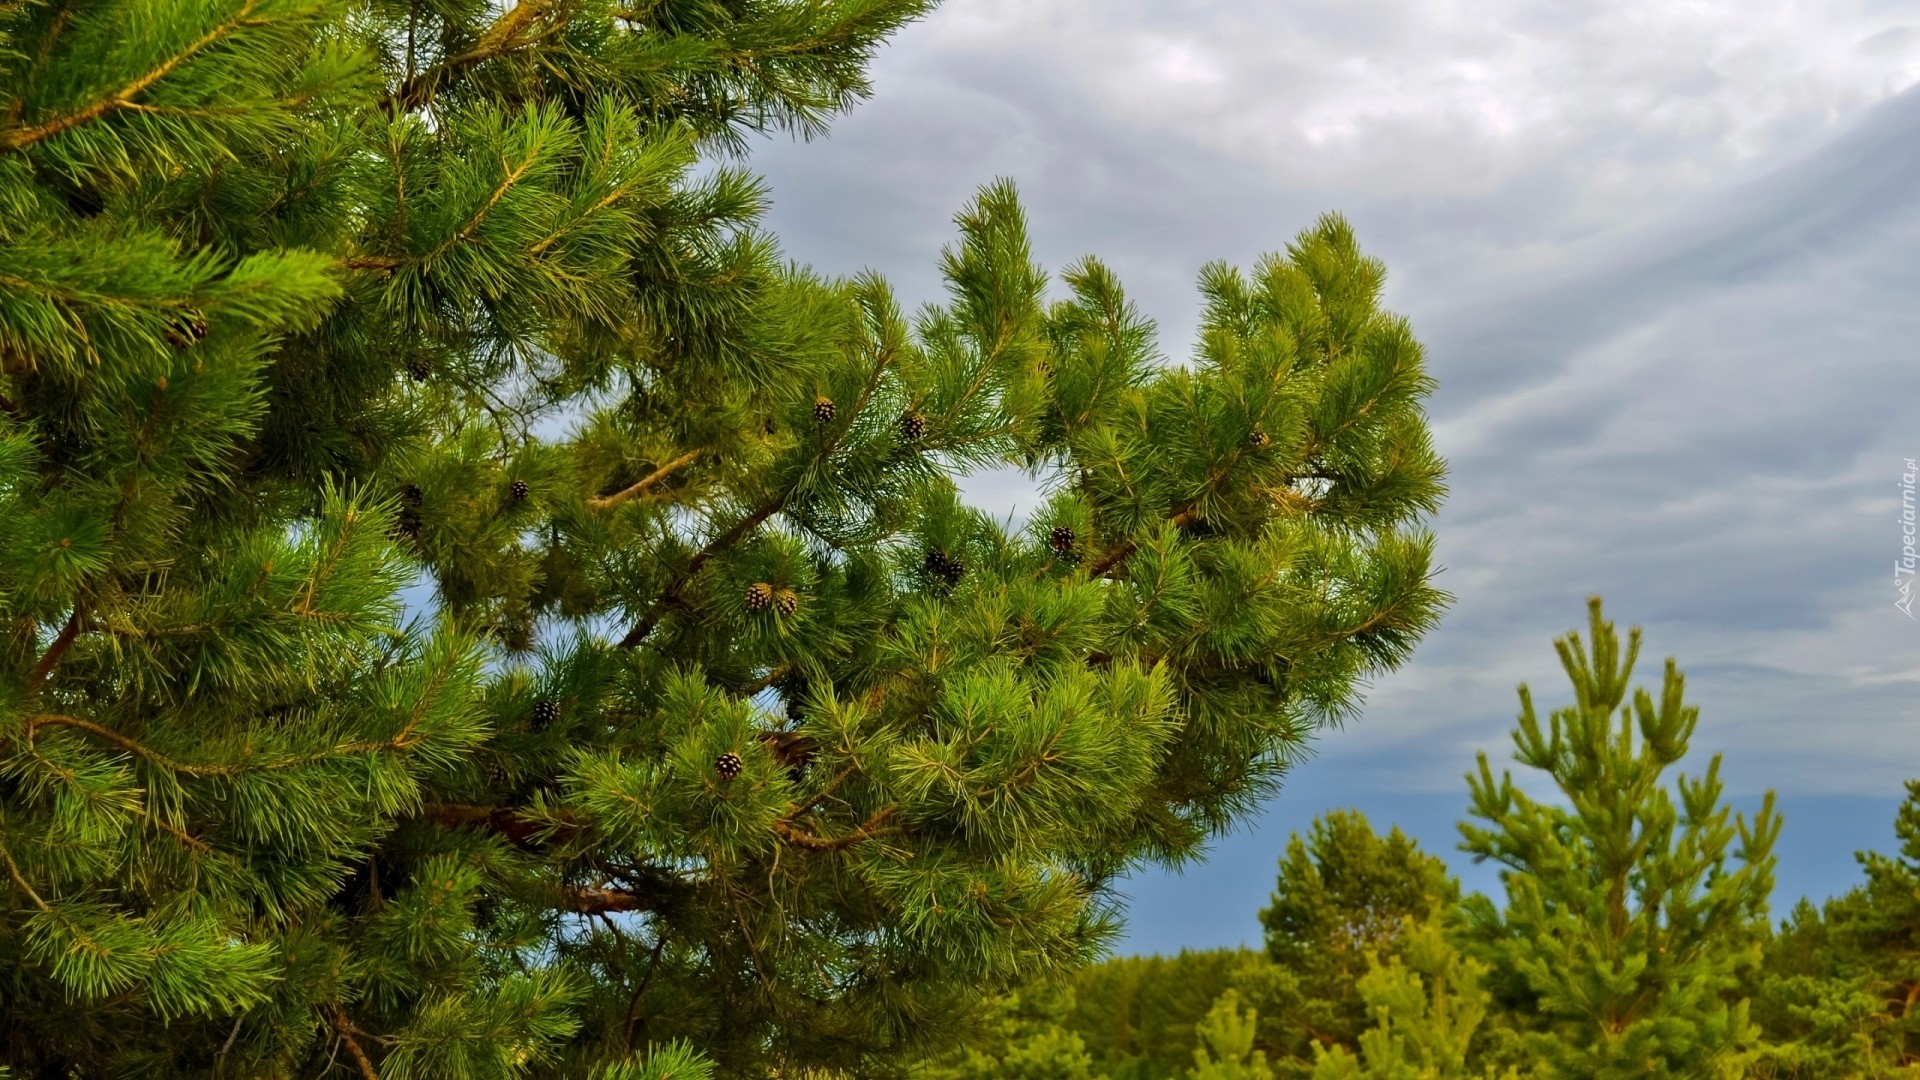 Pine Tree HD Download